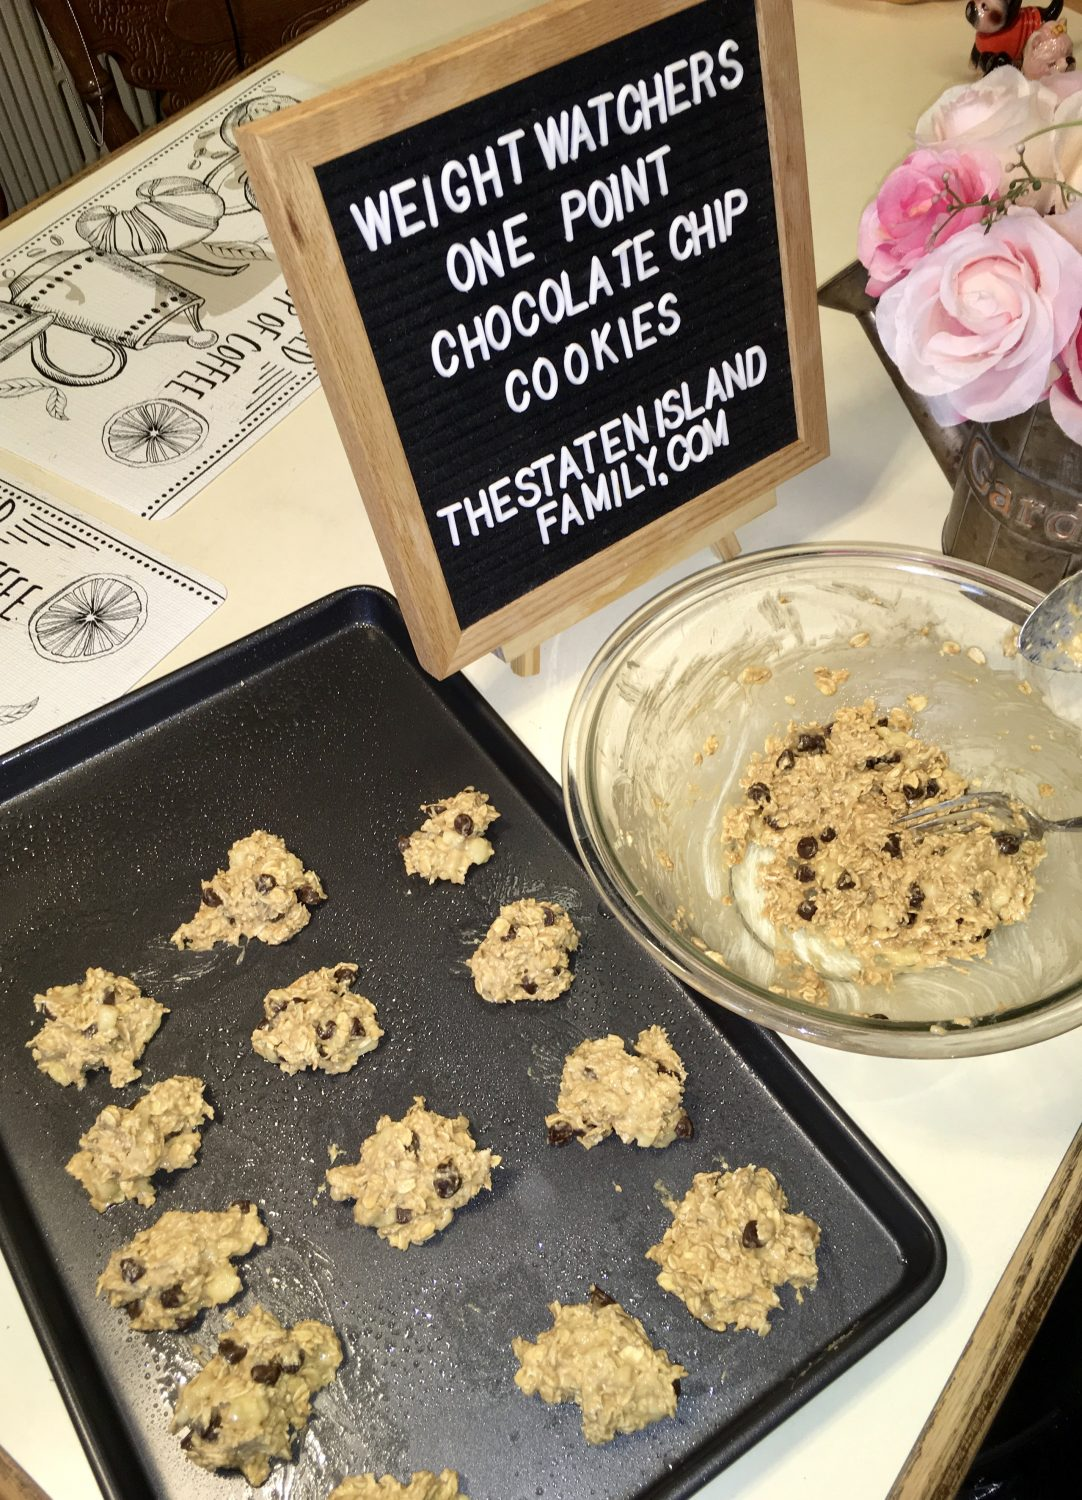 Weight Watchers 1 point chocolate chip cookies